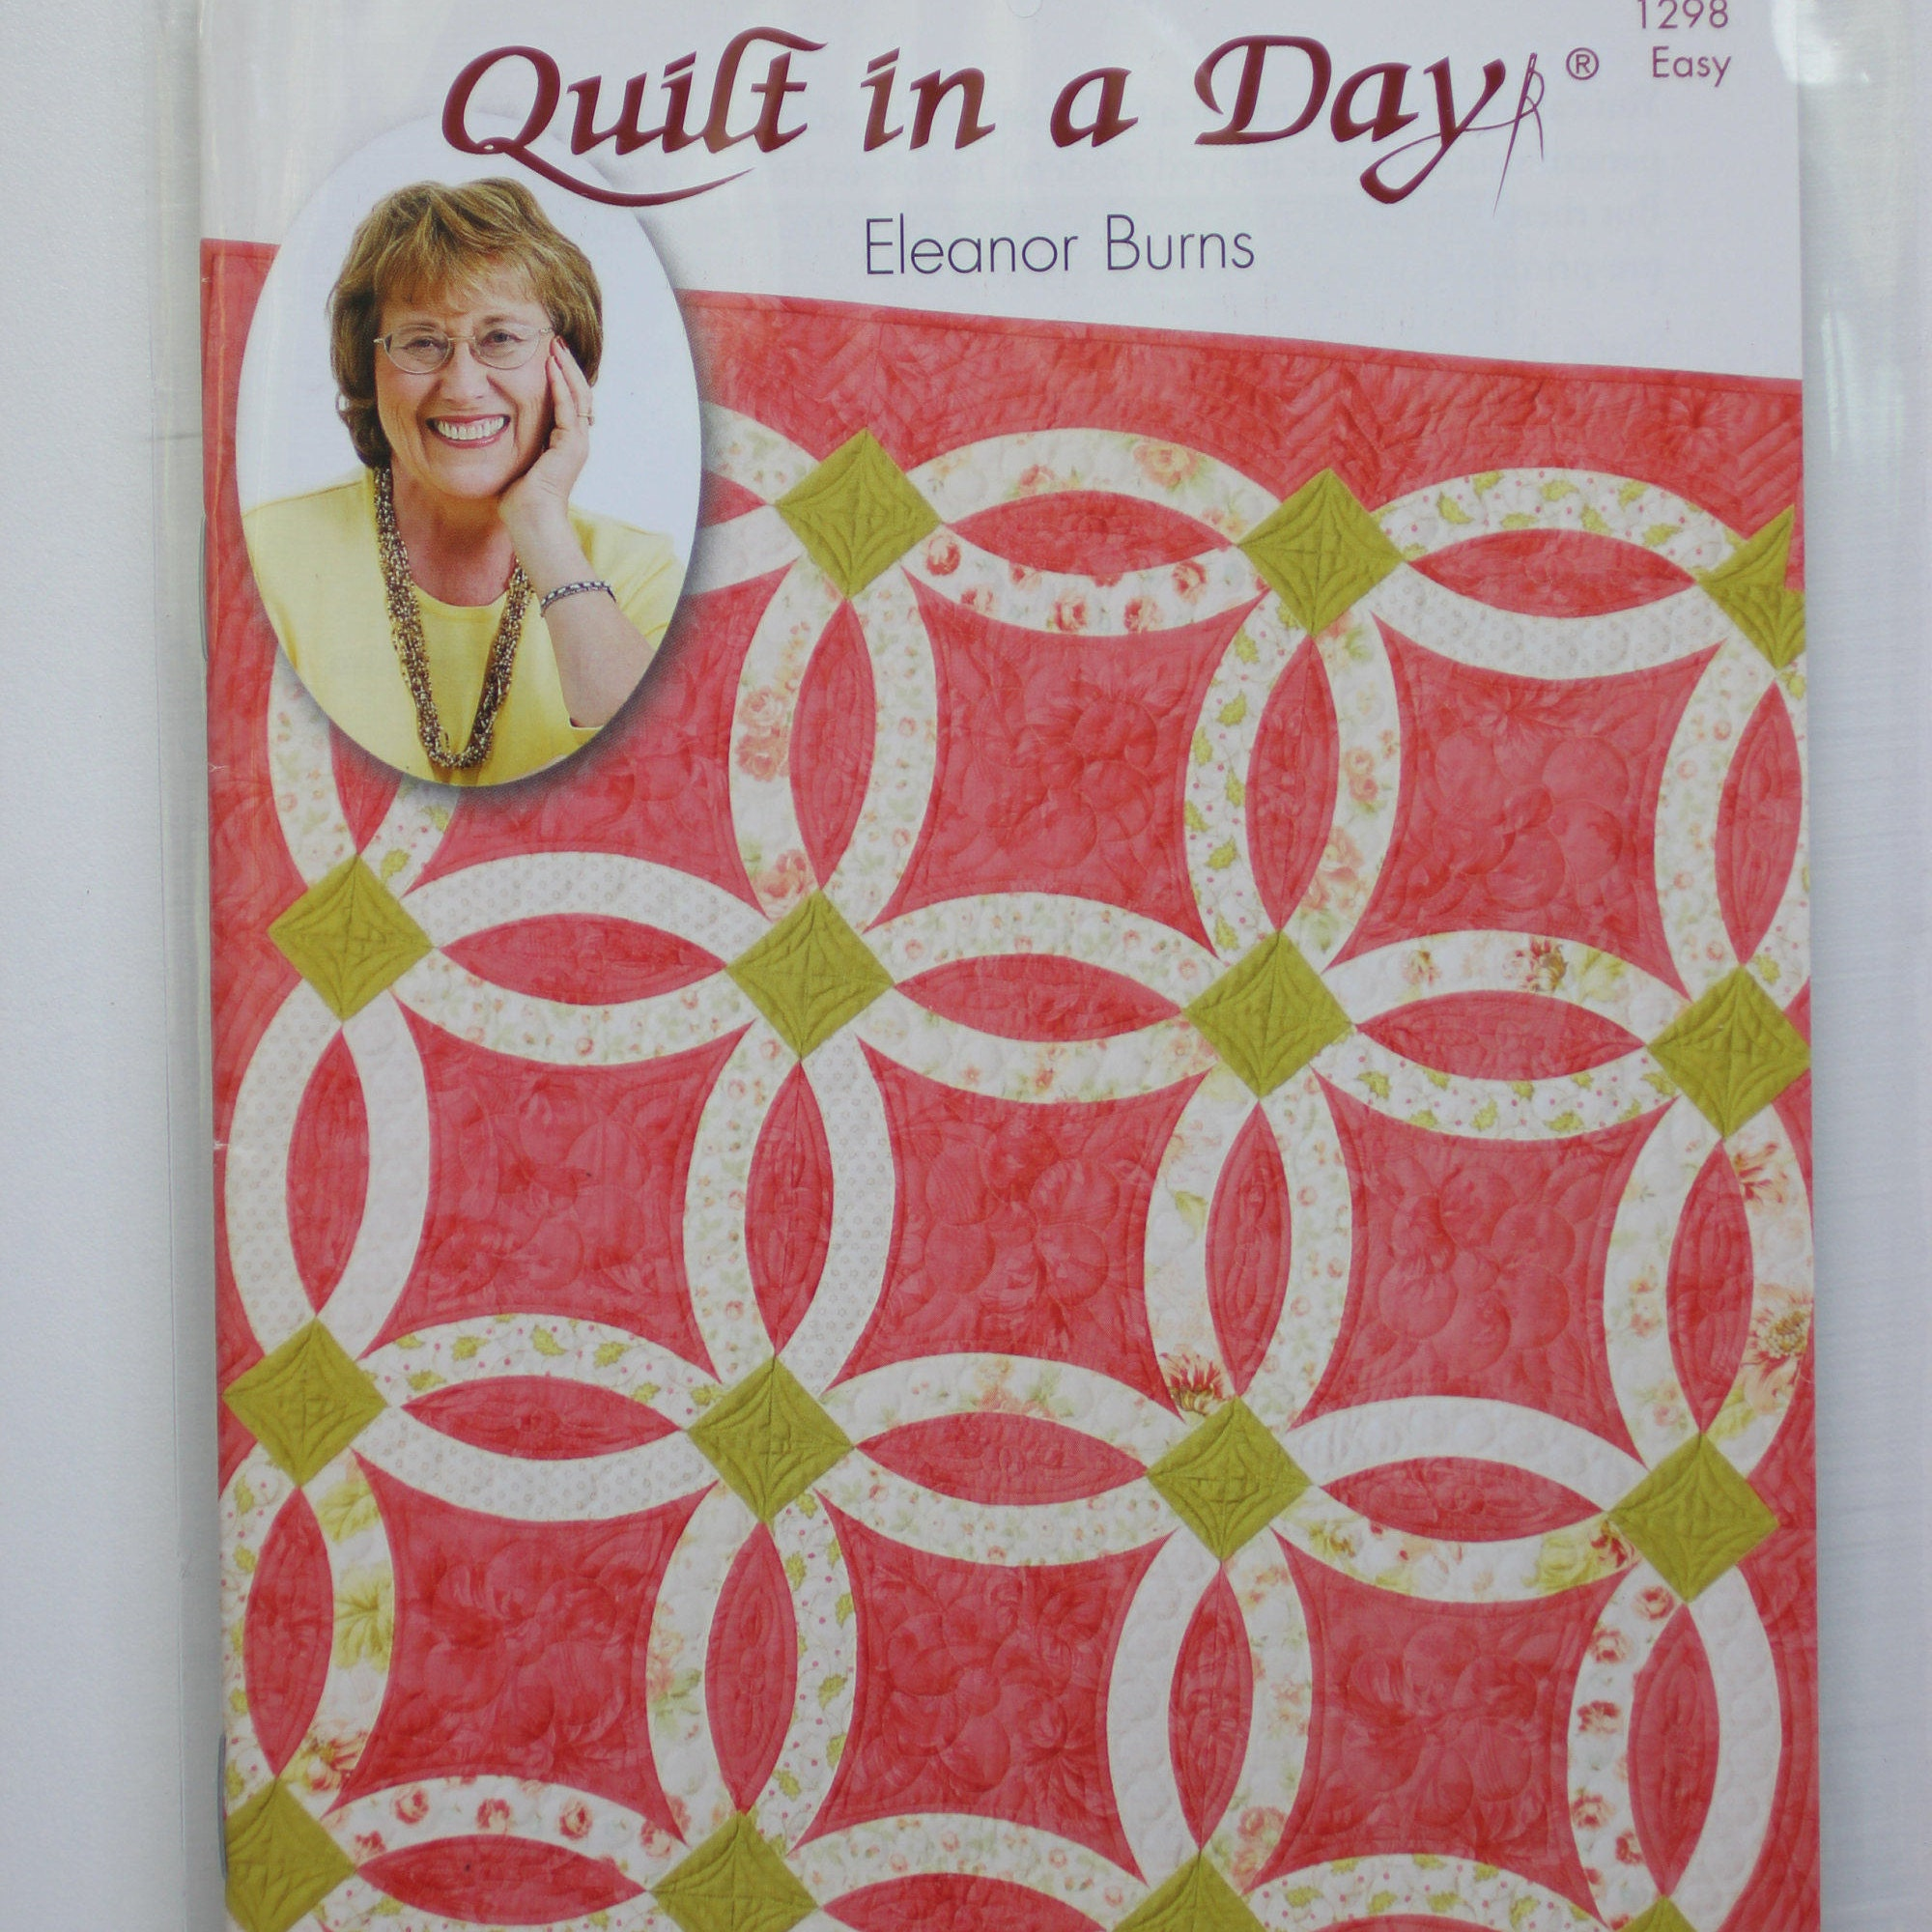 Nouveau Wedding Ring: Quilt in a Day. Easy quilt pattern.